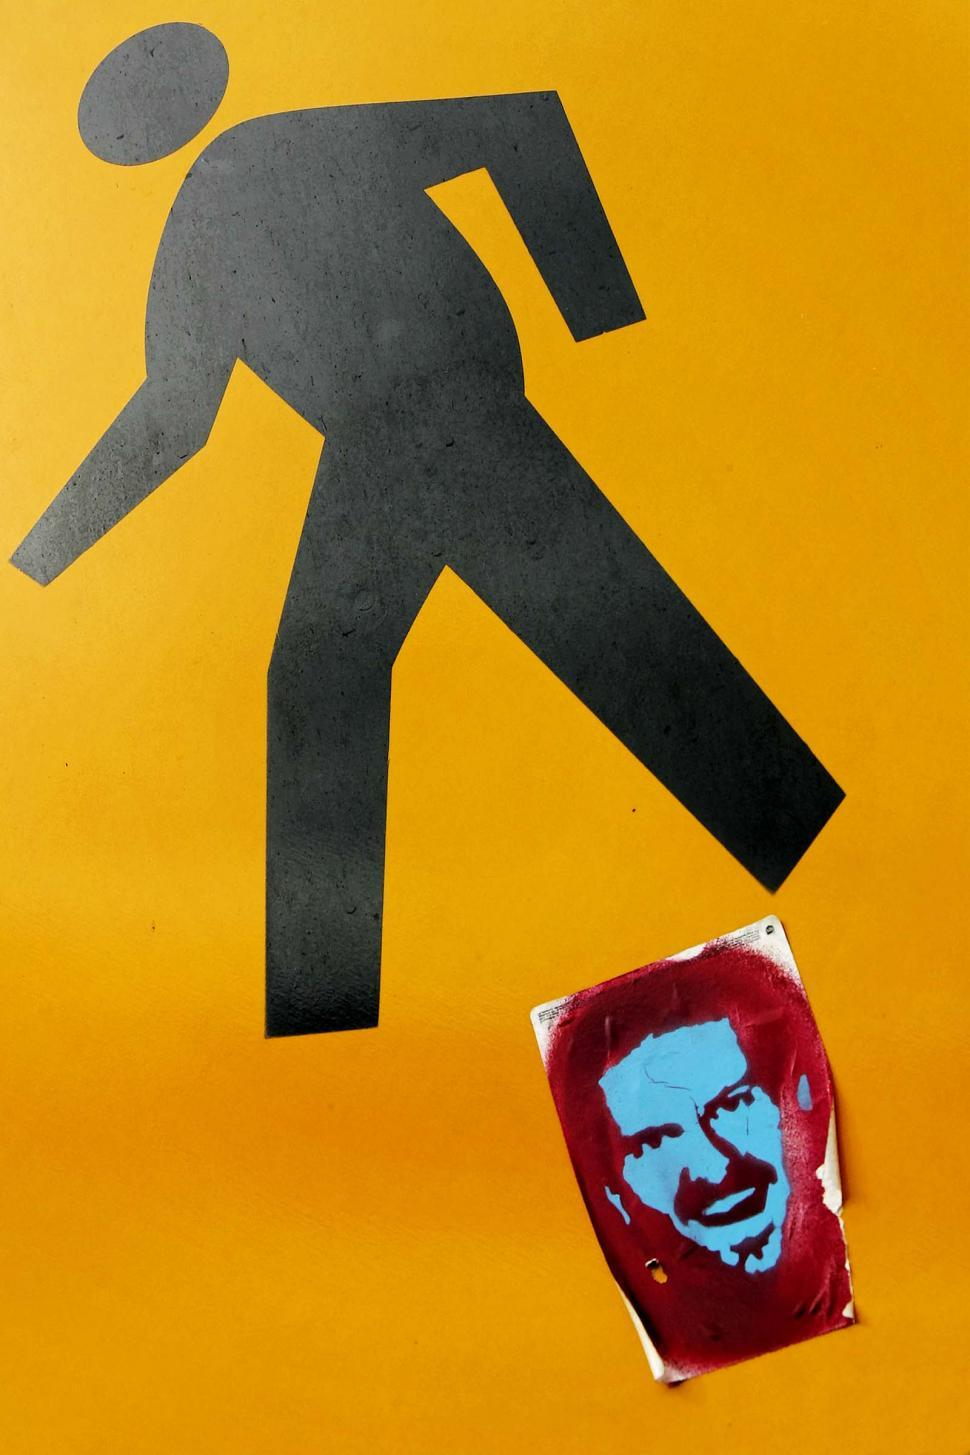 Download Free Stock Photo of Pedestrian crossing with sticker